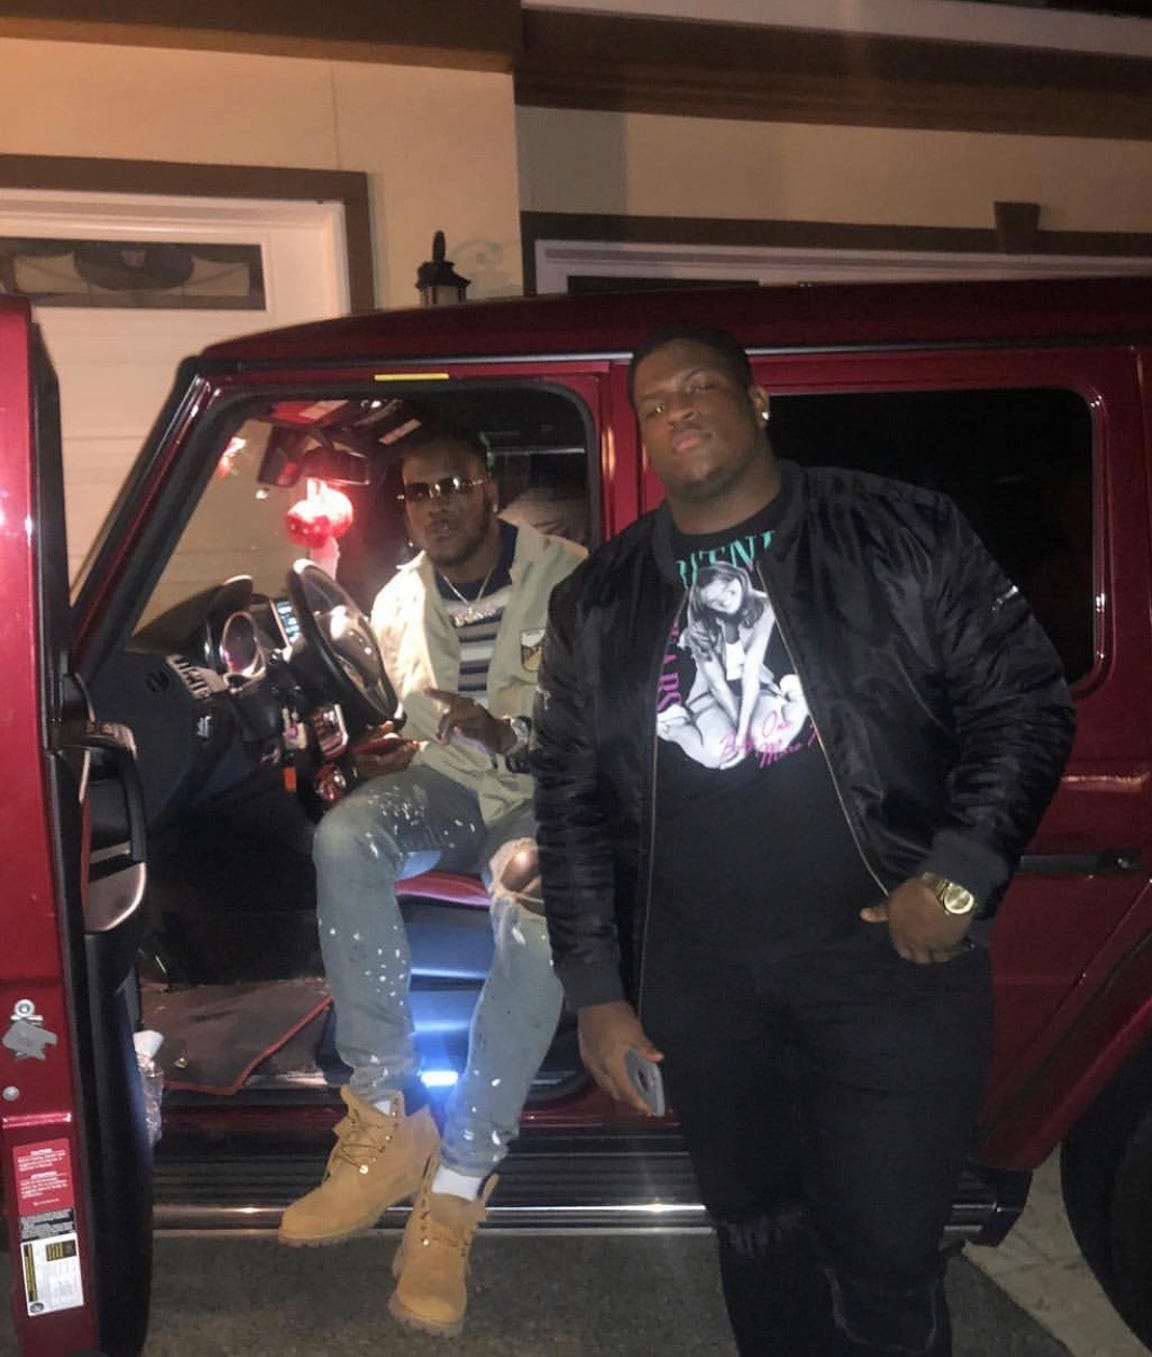 Frank and Christian Clark take a photo in front of Frank's Mercedes-Benz G-Class truck (G-Wagon).